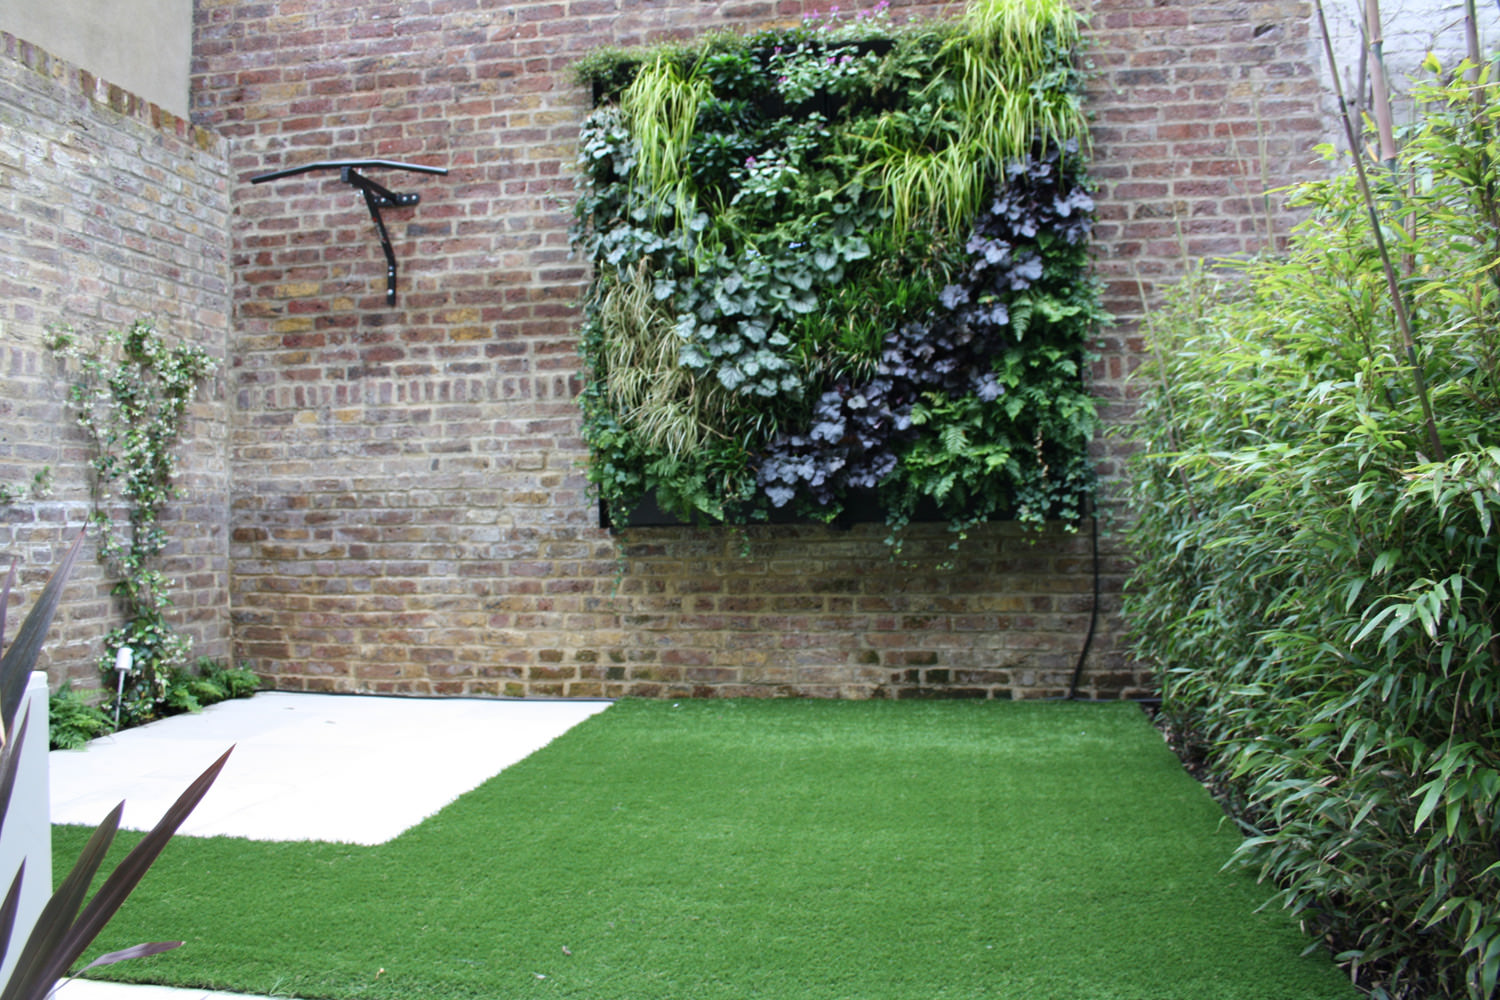 Top 10 london garden designs garden club london for Great small garden ideas